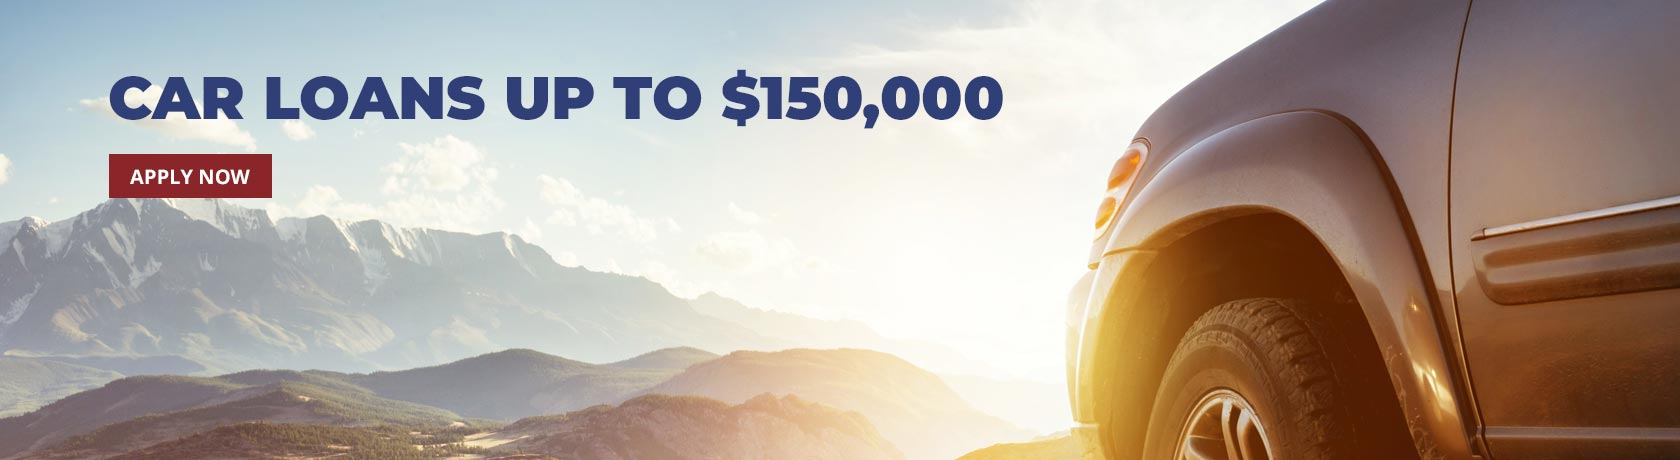 Car Loans up to $150,000.  Apply Now.